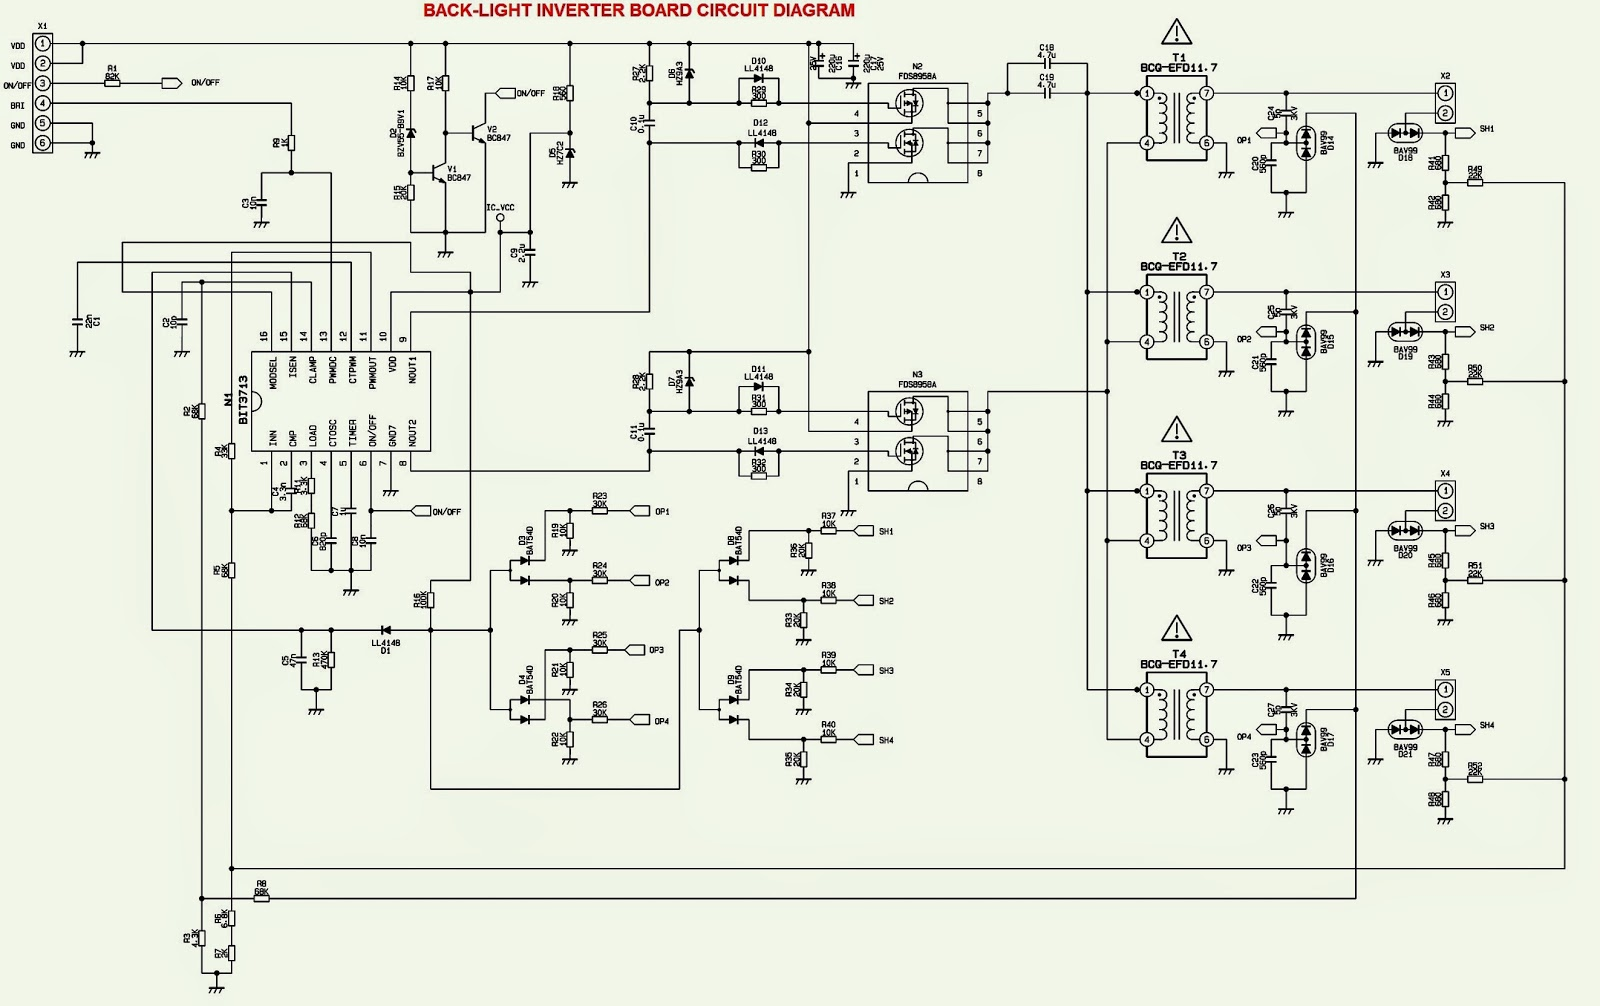 back light inverter schematic [ 1600 x 1006 Pixel ]